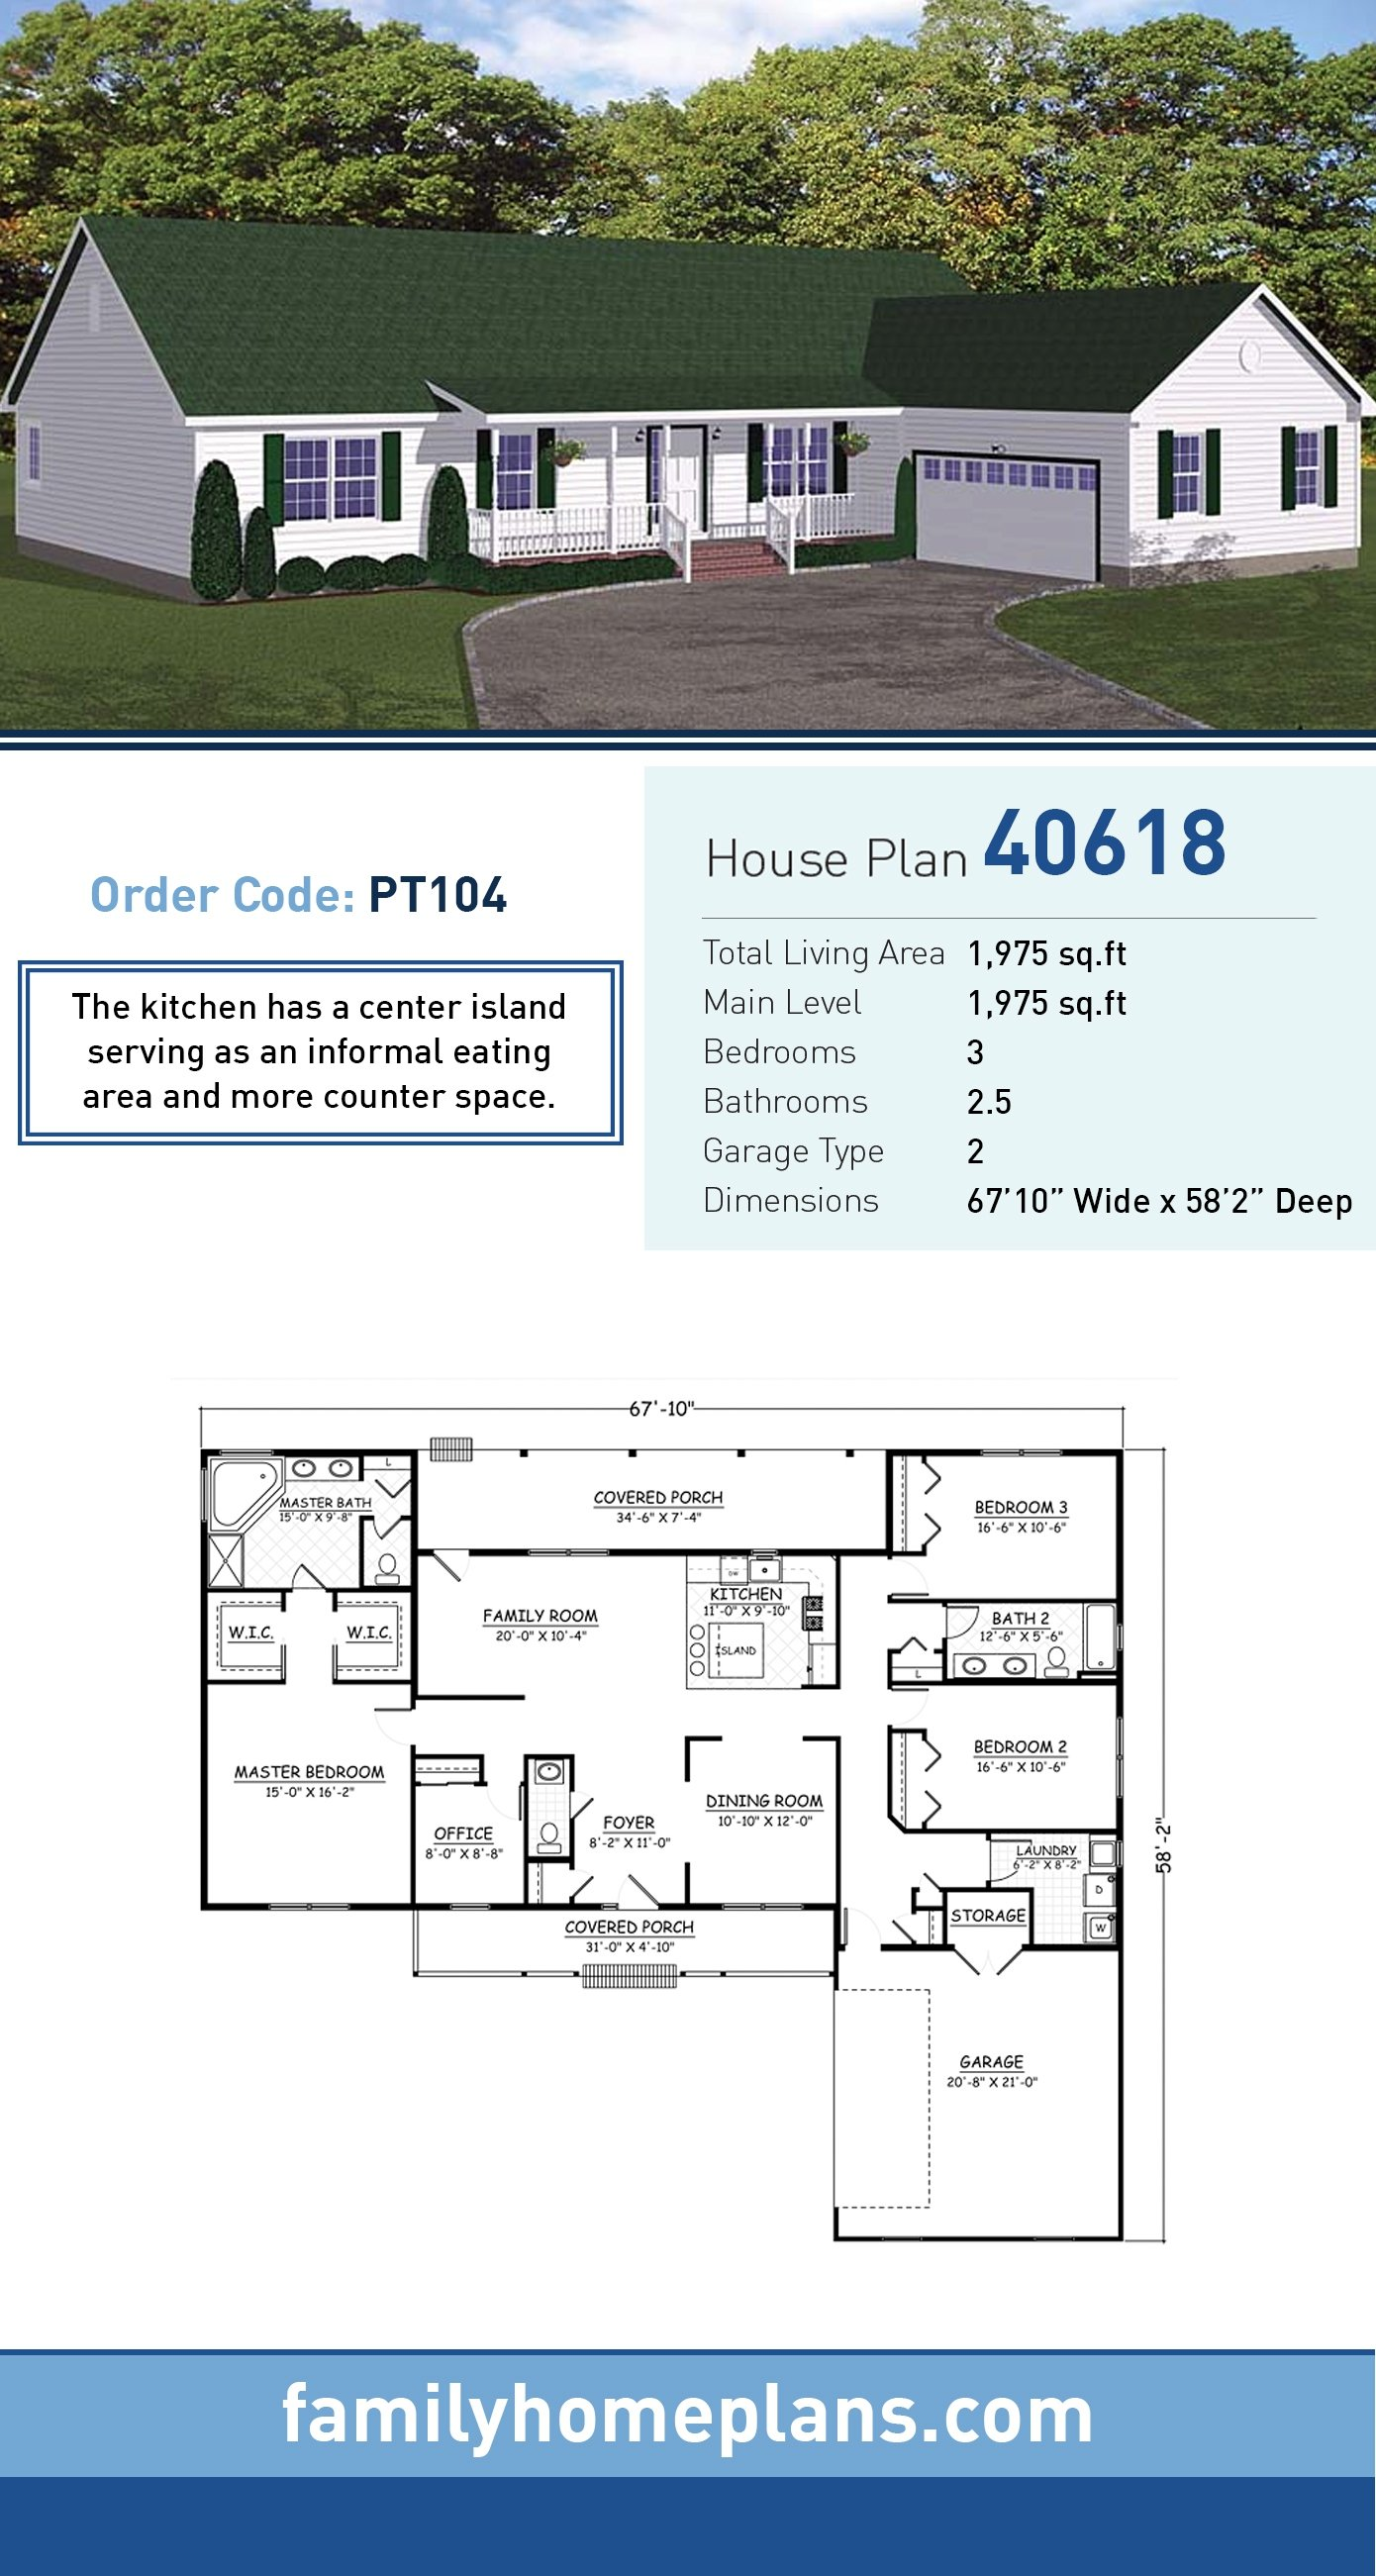 Country, Ranch, Traditional House Plan 40618 with 3 Beds, 3 Baths, 2 Car Garage